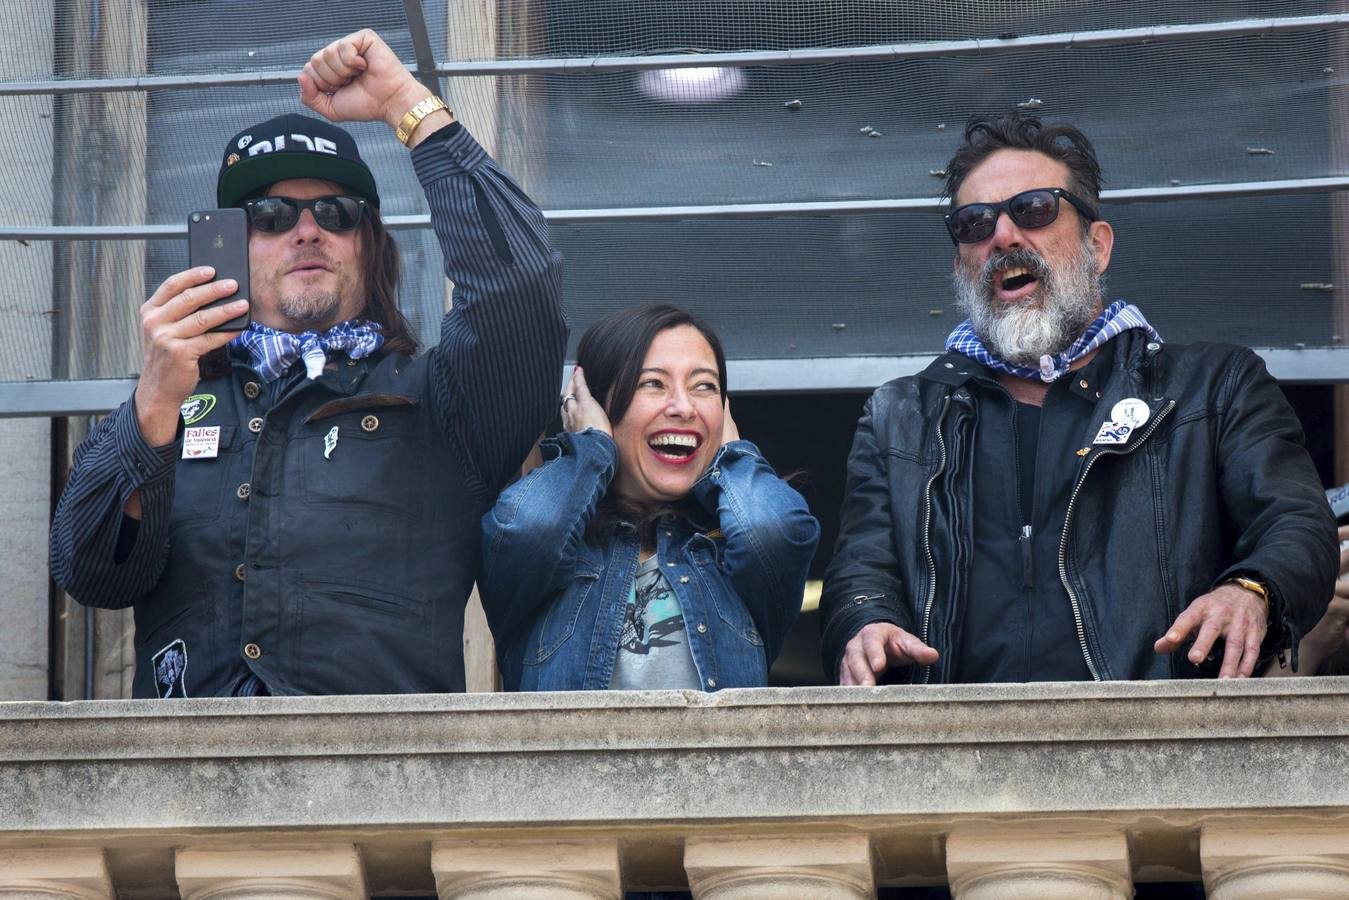 Los actores de Daryl y Negan, de 'The Walking Dead', en la mascletà de Valencia